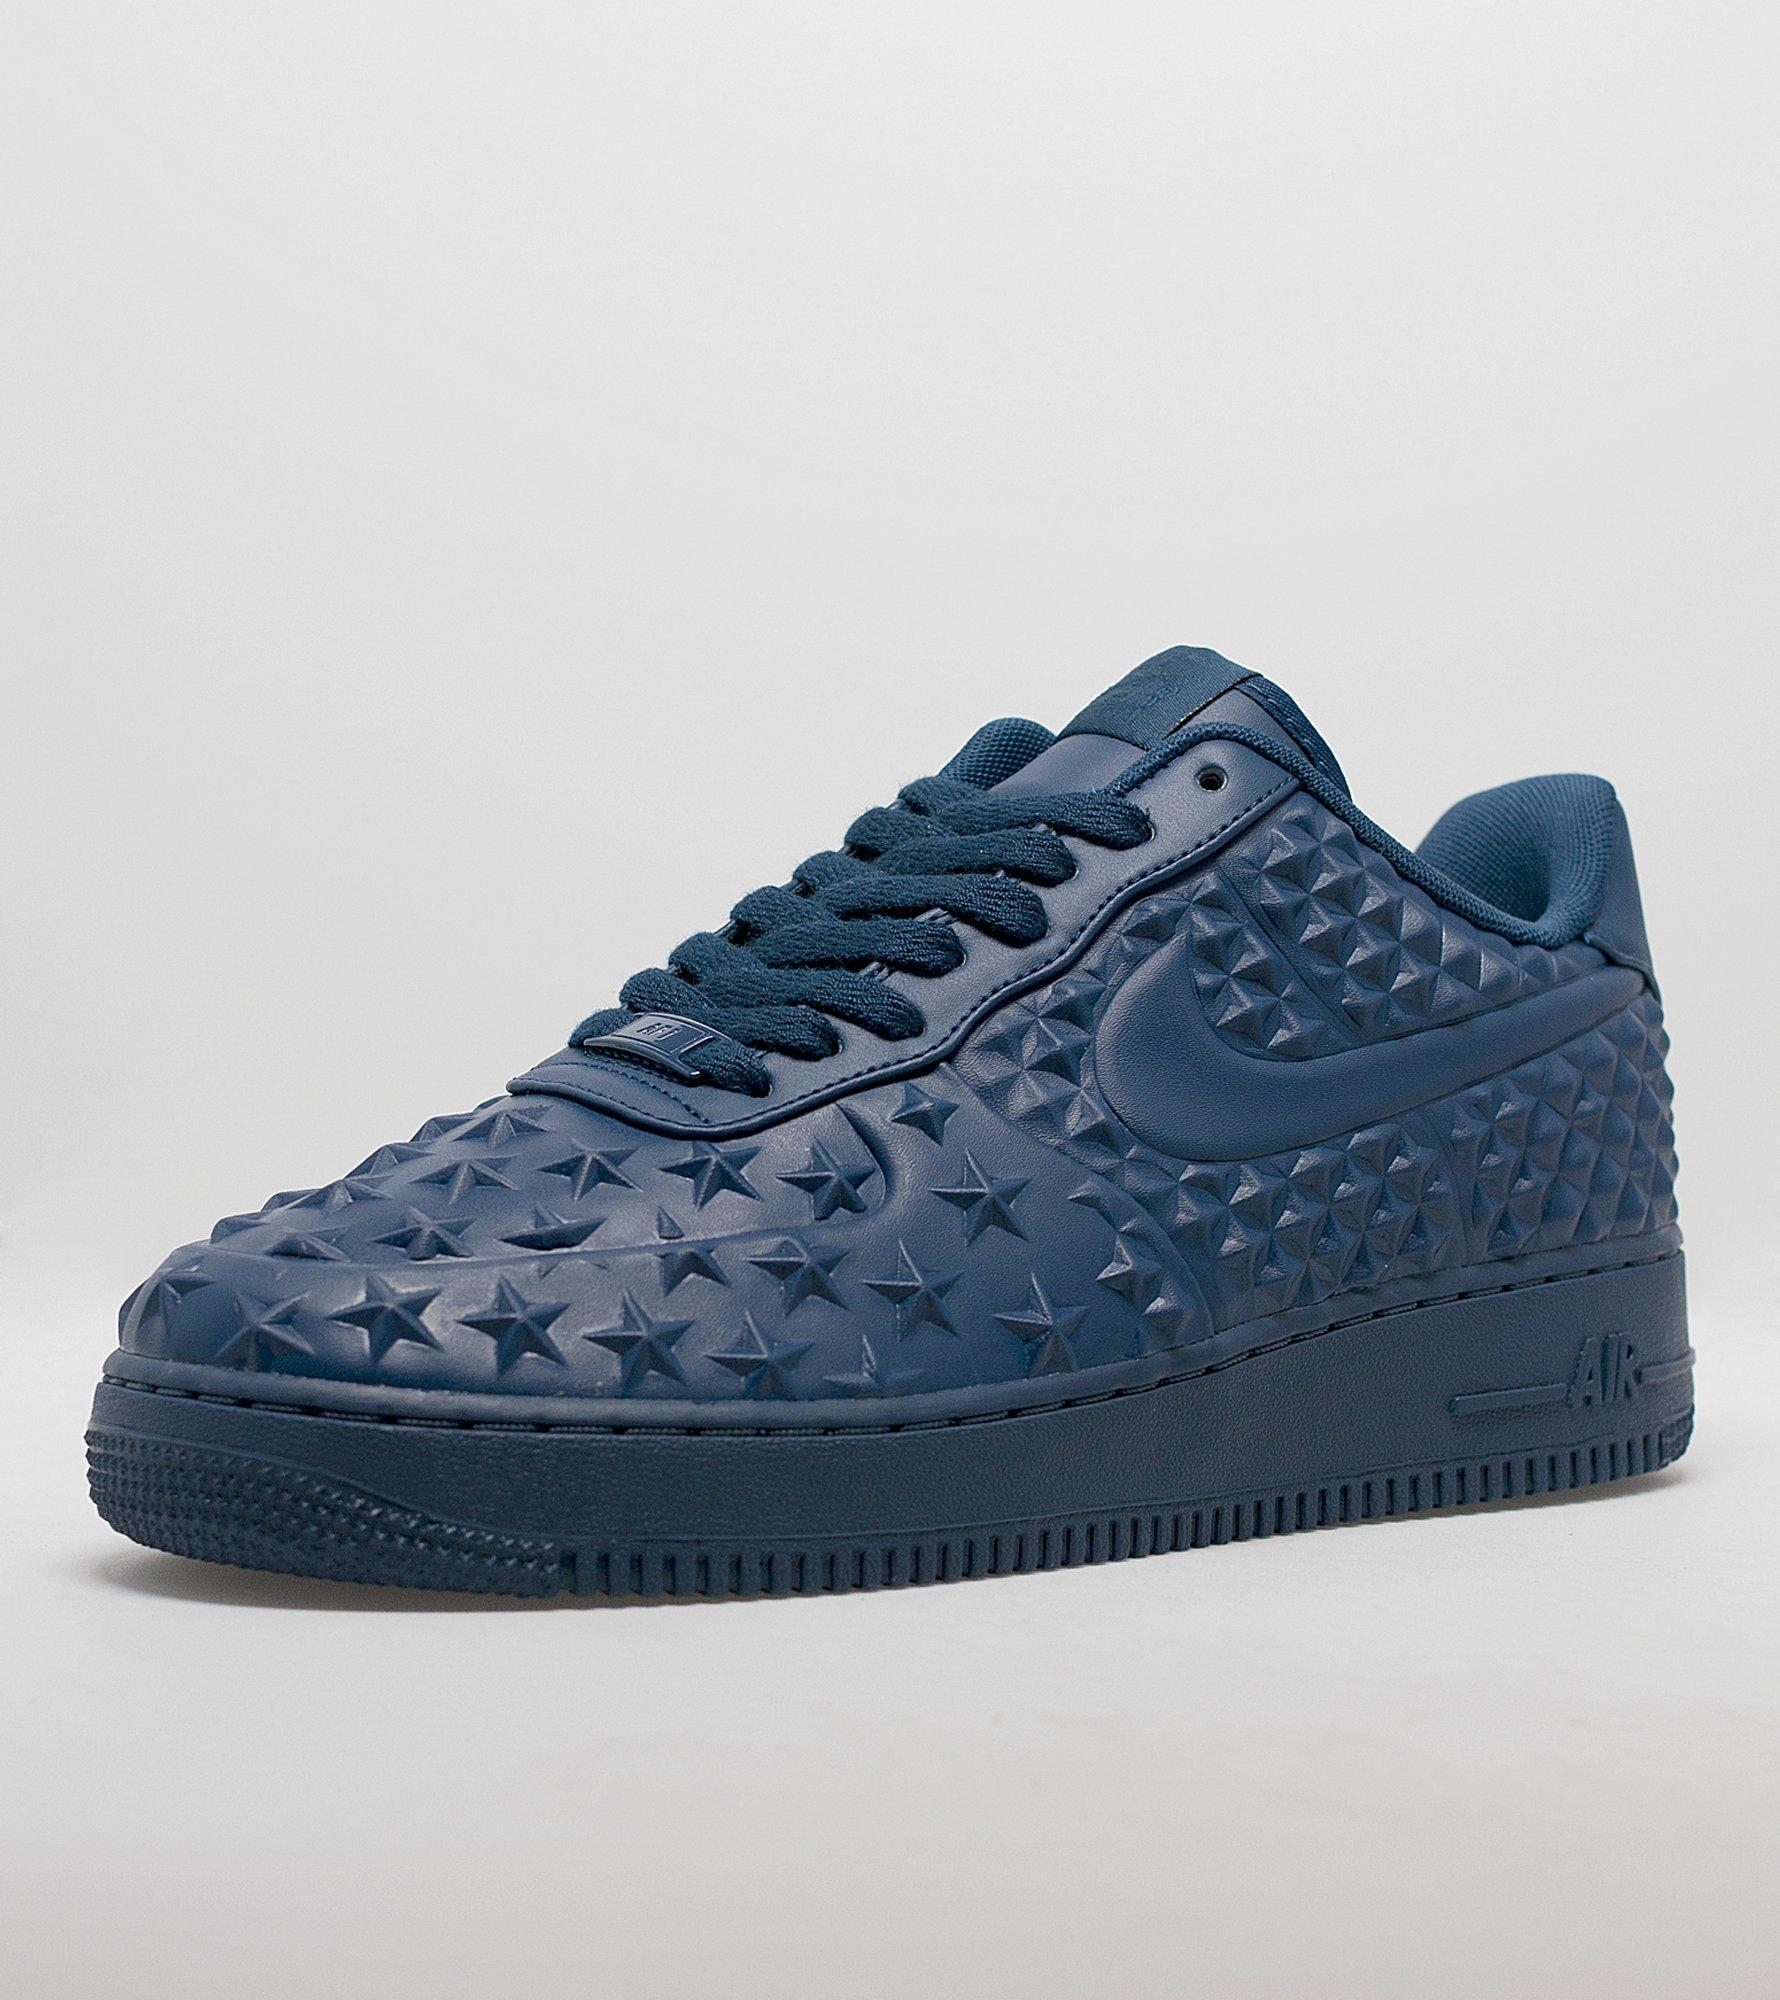 nike air force 1 lv8 independence day £75.00